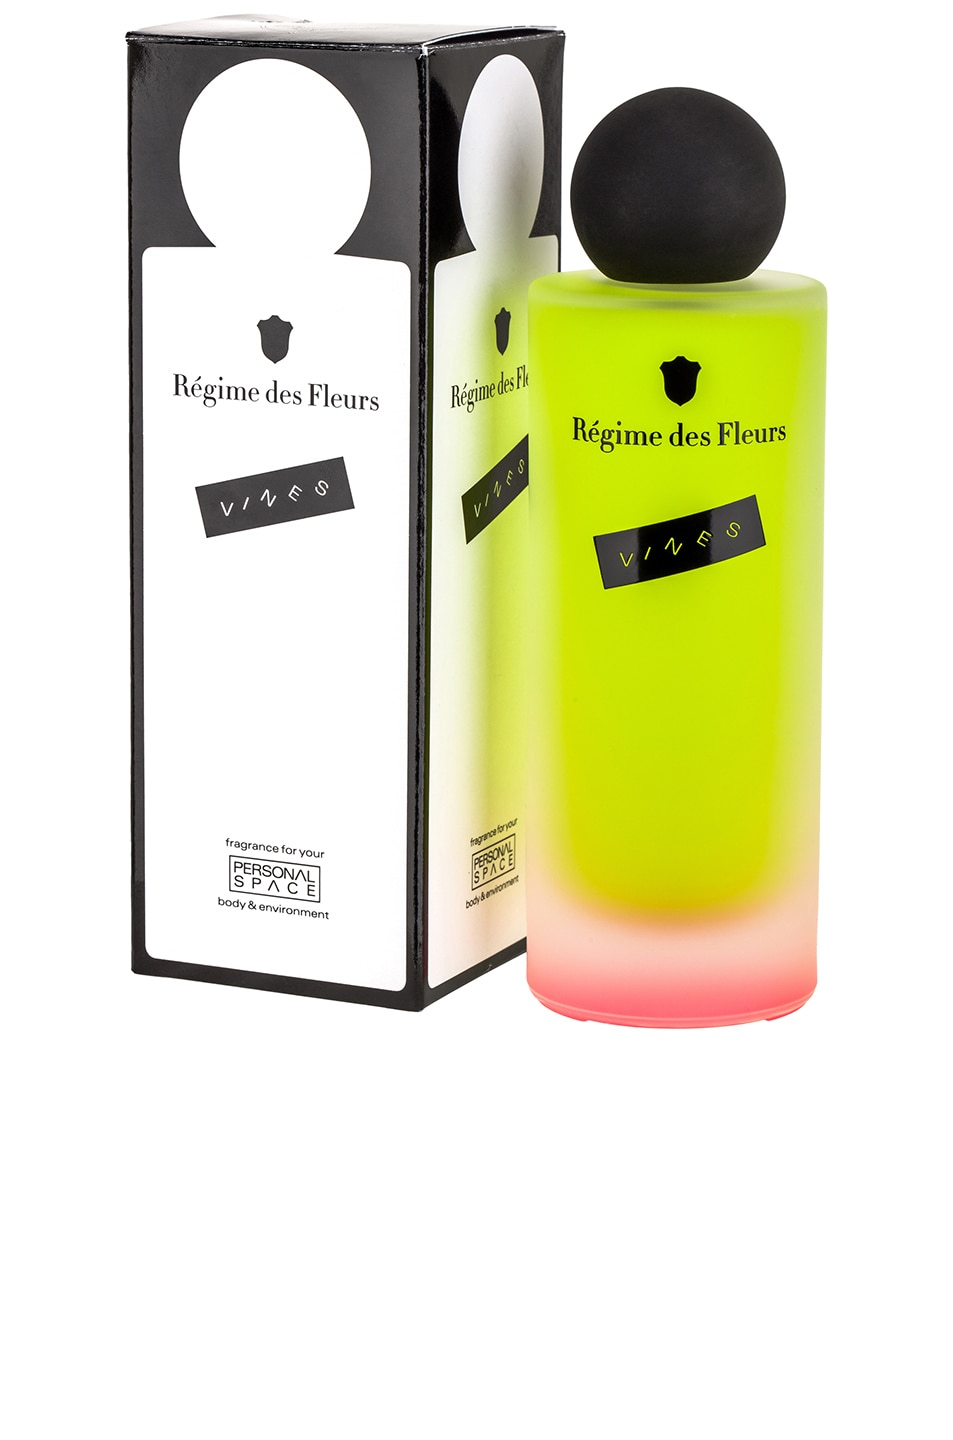 Image 2 of Regime Des Fleurs Vines Body & Environment Fragrance in Vines